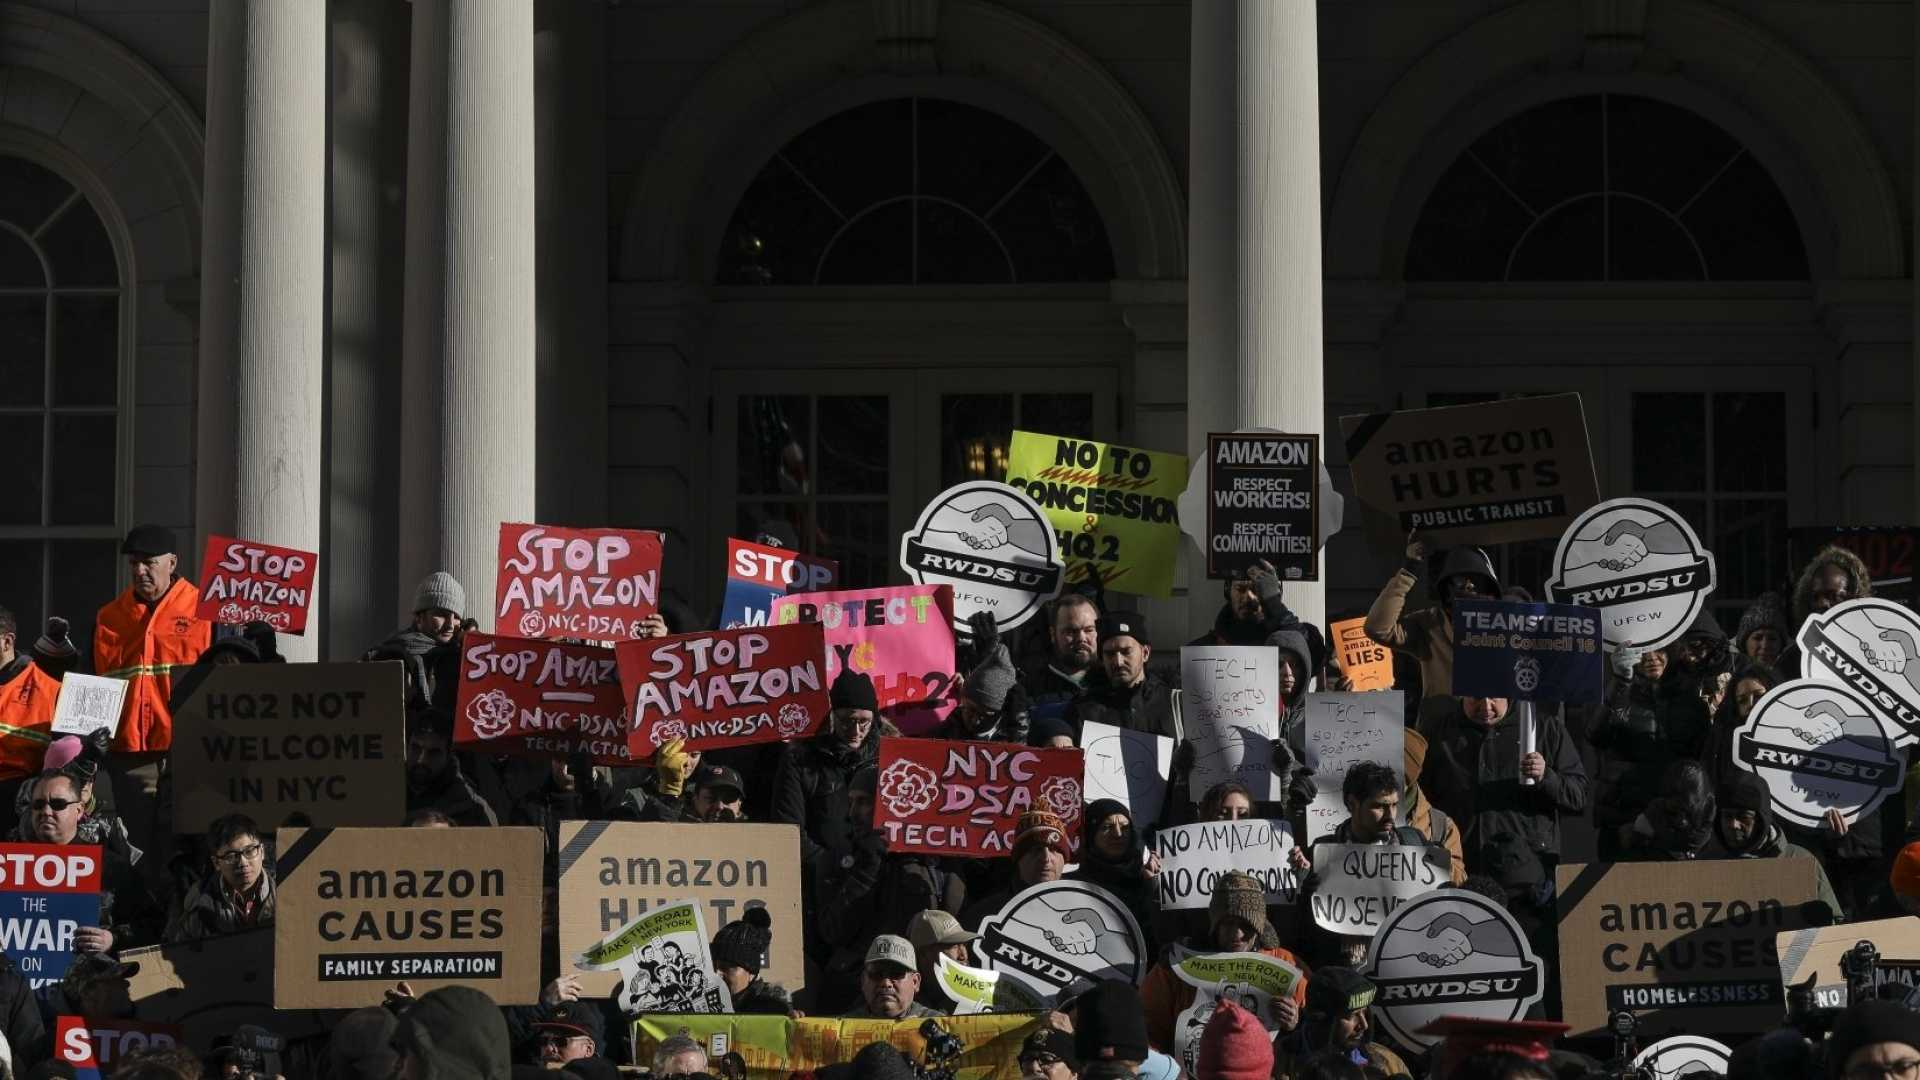 Amazon's New York HQ2 Deal Is in Trouble